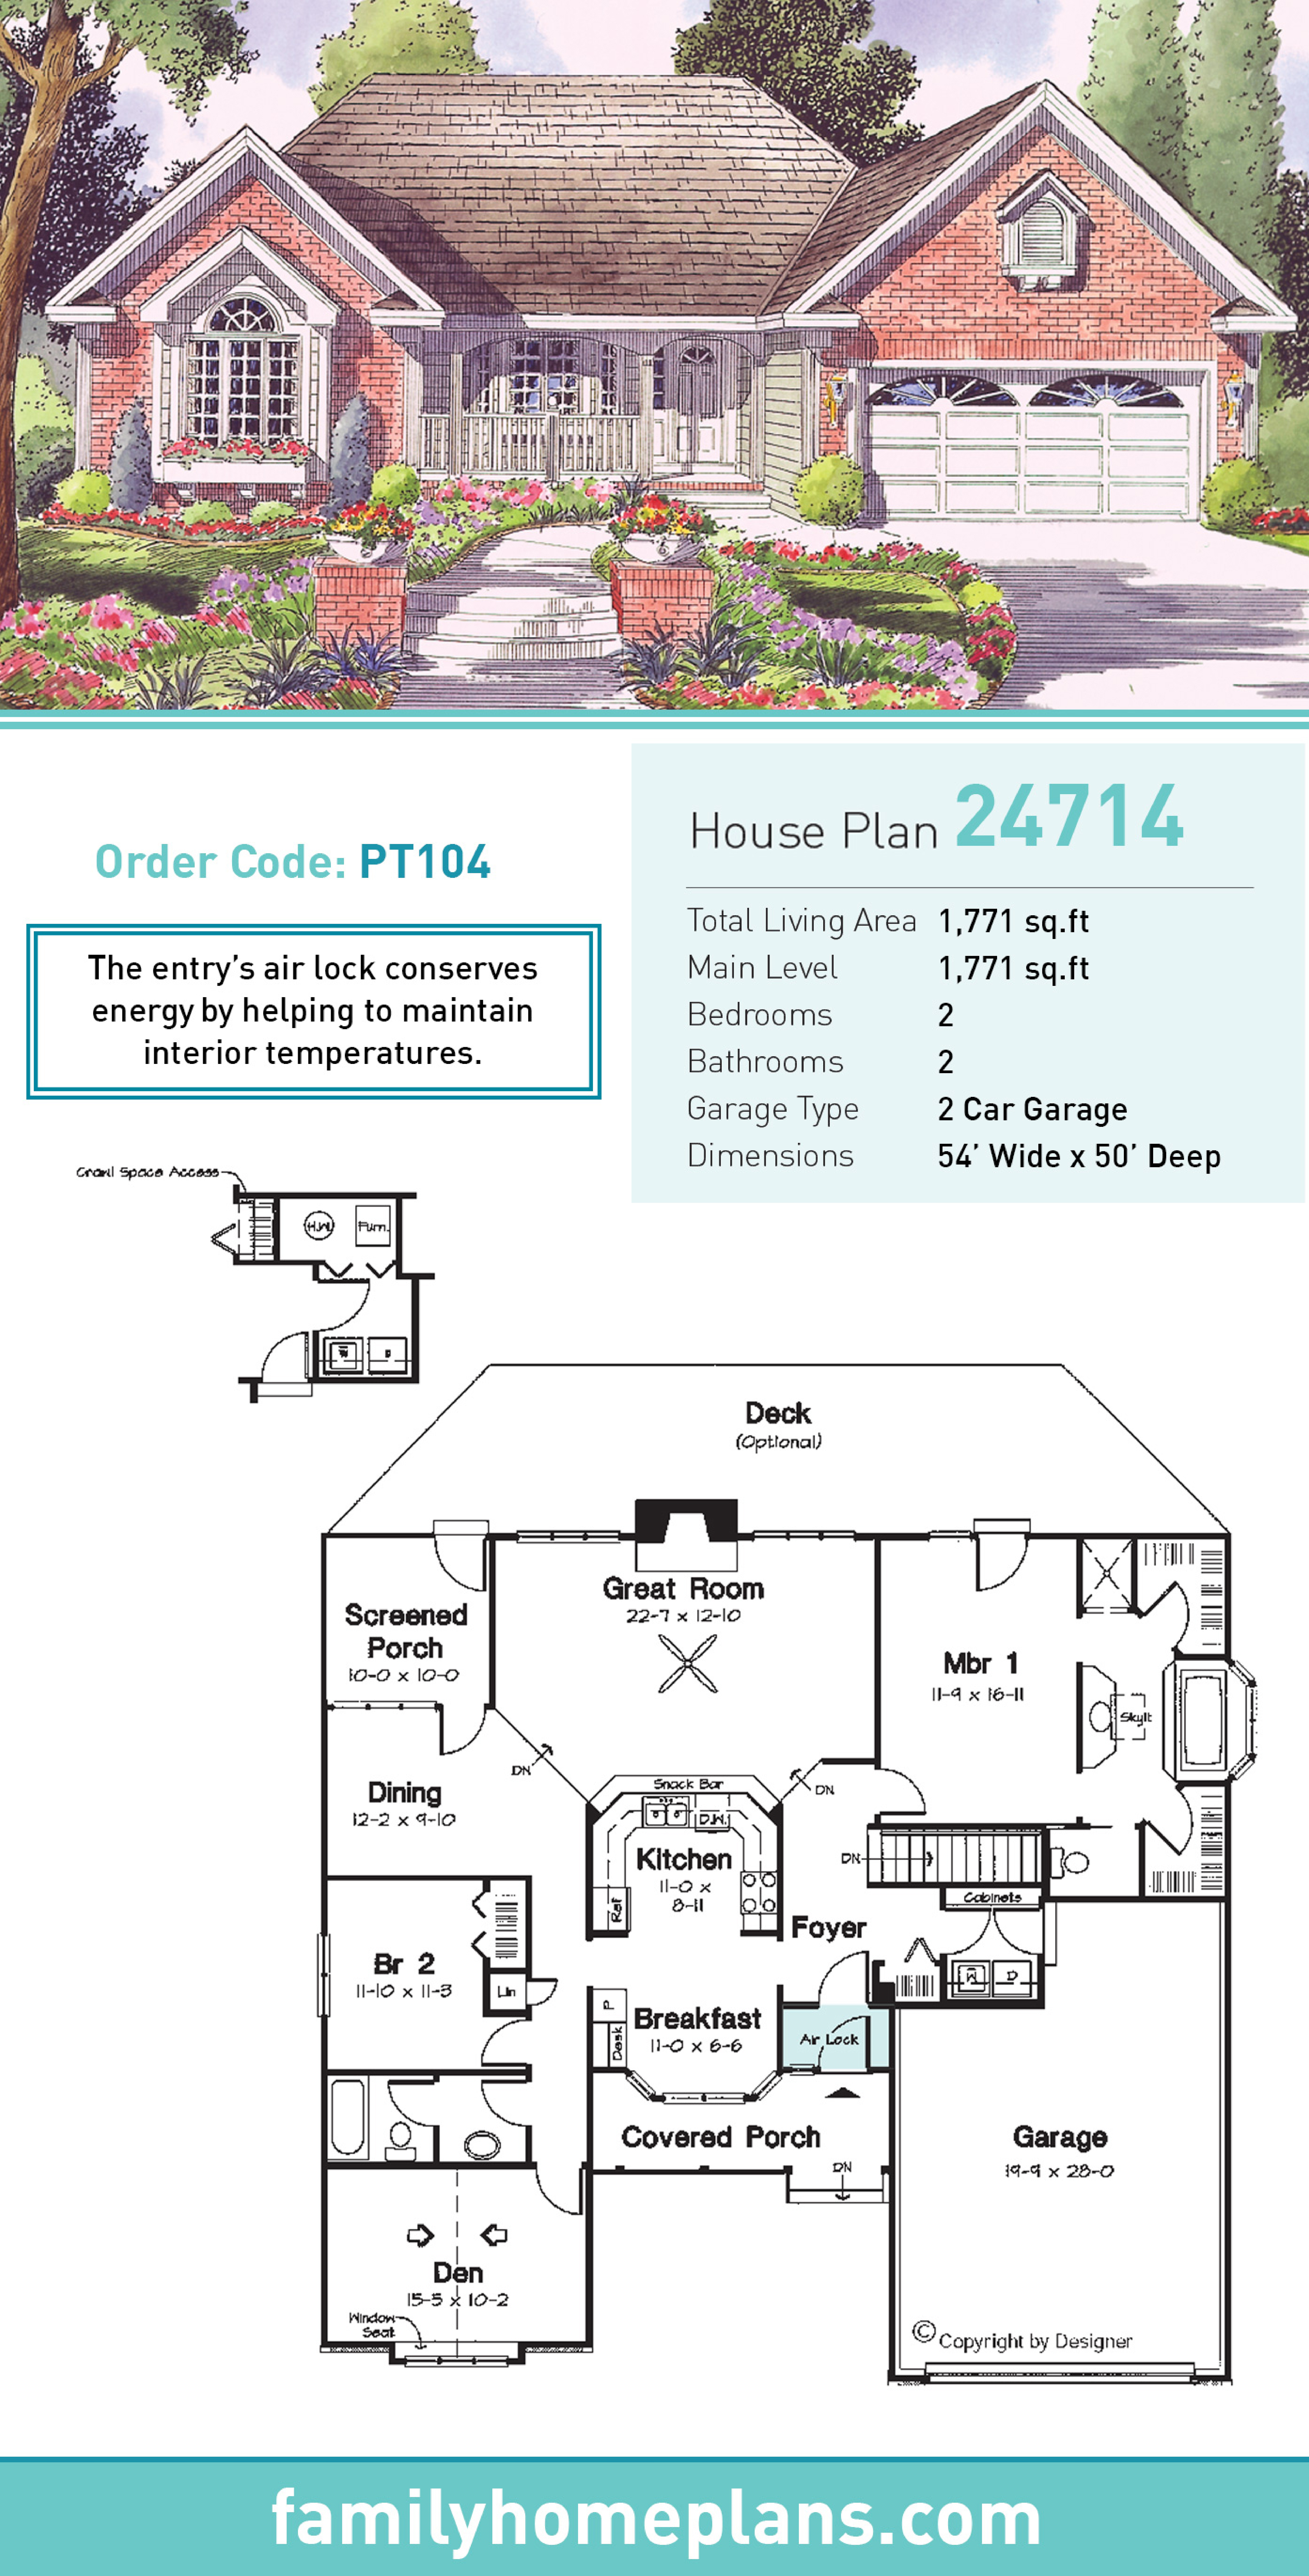 Country, Ranch, Traditional House Plan 24714 with 2 Beds, 2 Baths, 2 Car Garage